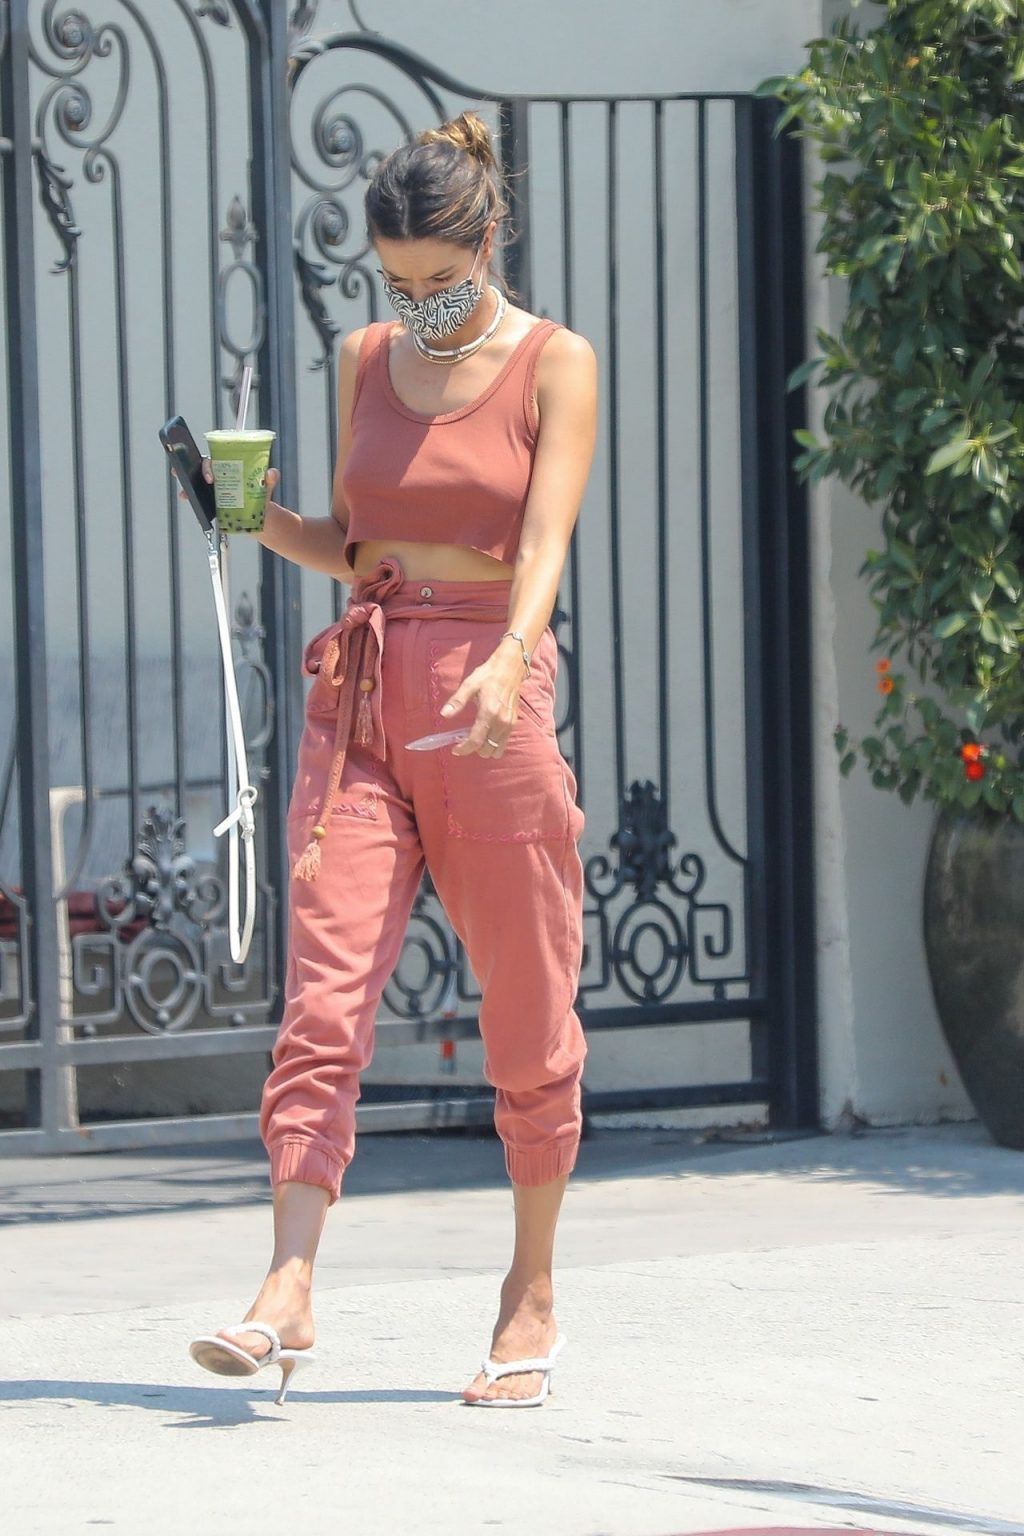 Alessandra Ambrosio Goes Braless while Getting Boba (27 Photos)